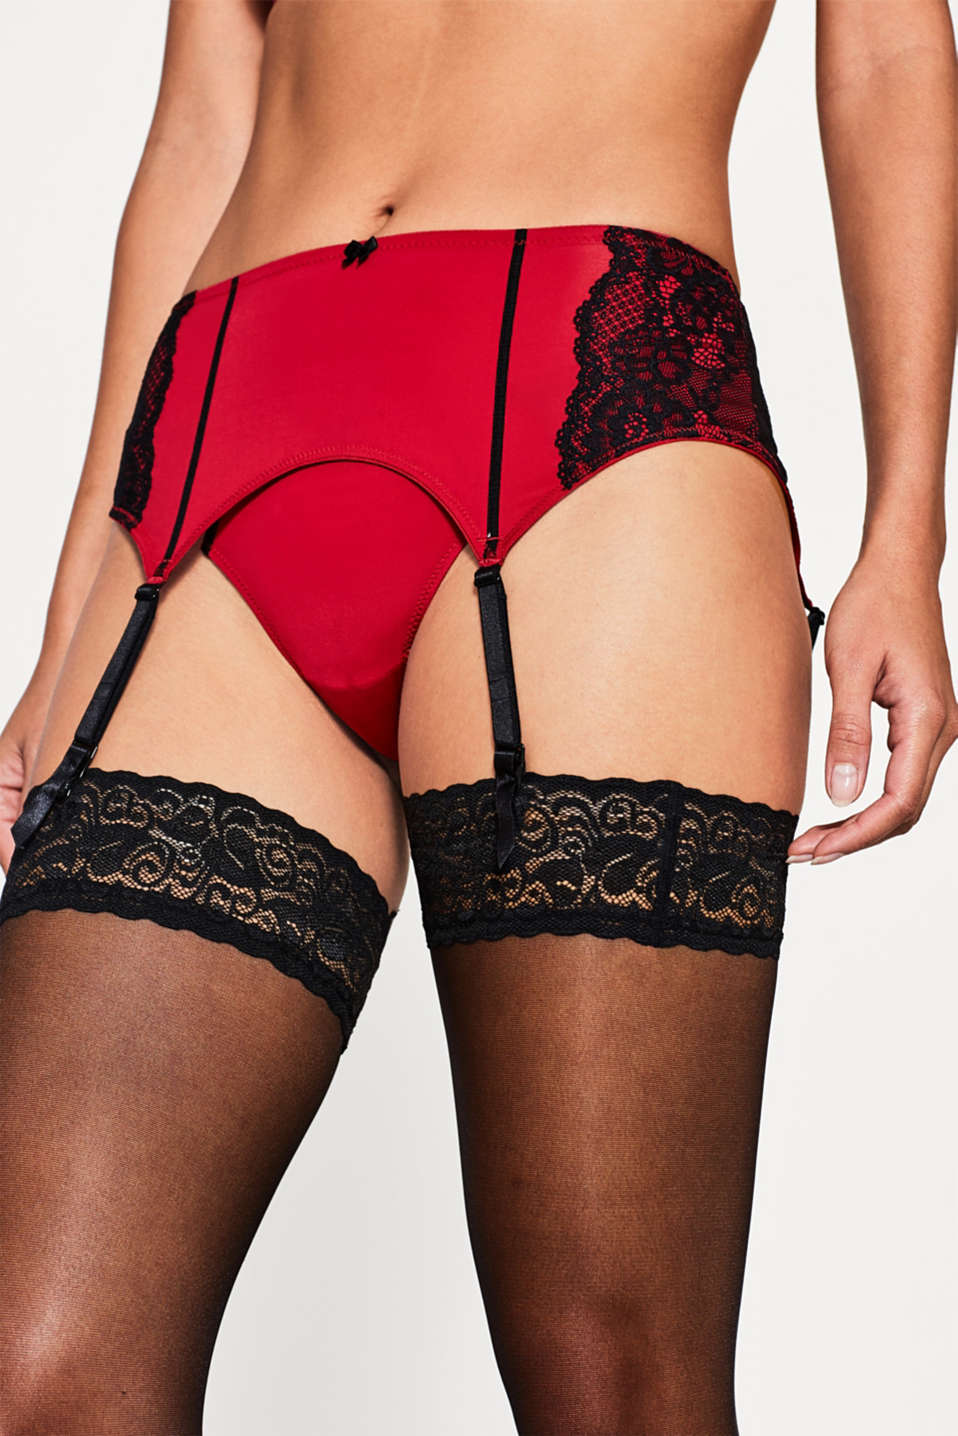 edc - Two-tone suspender belt with lace